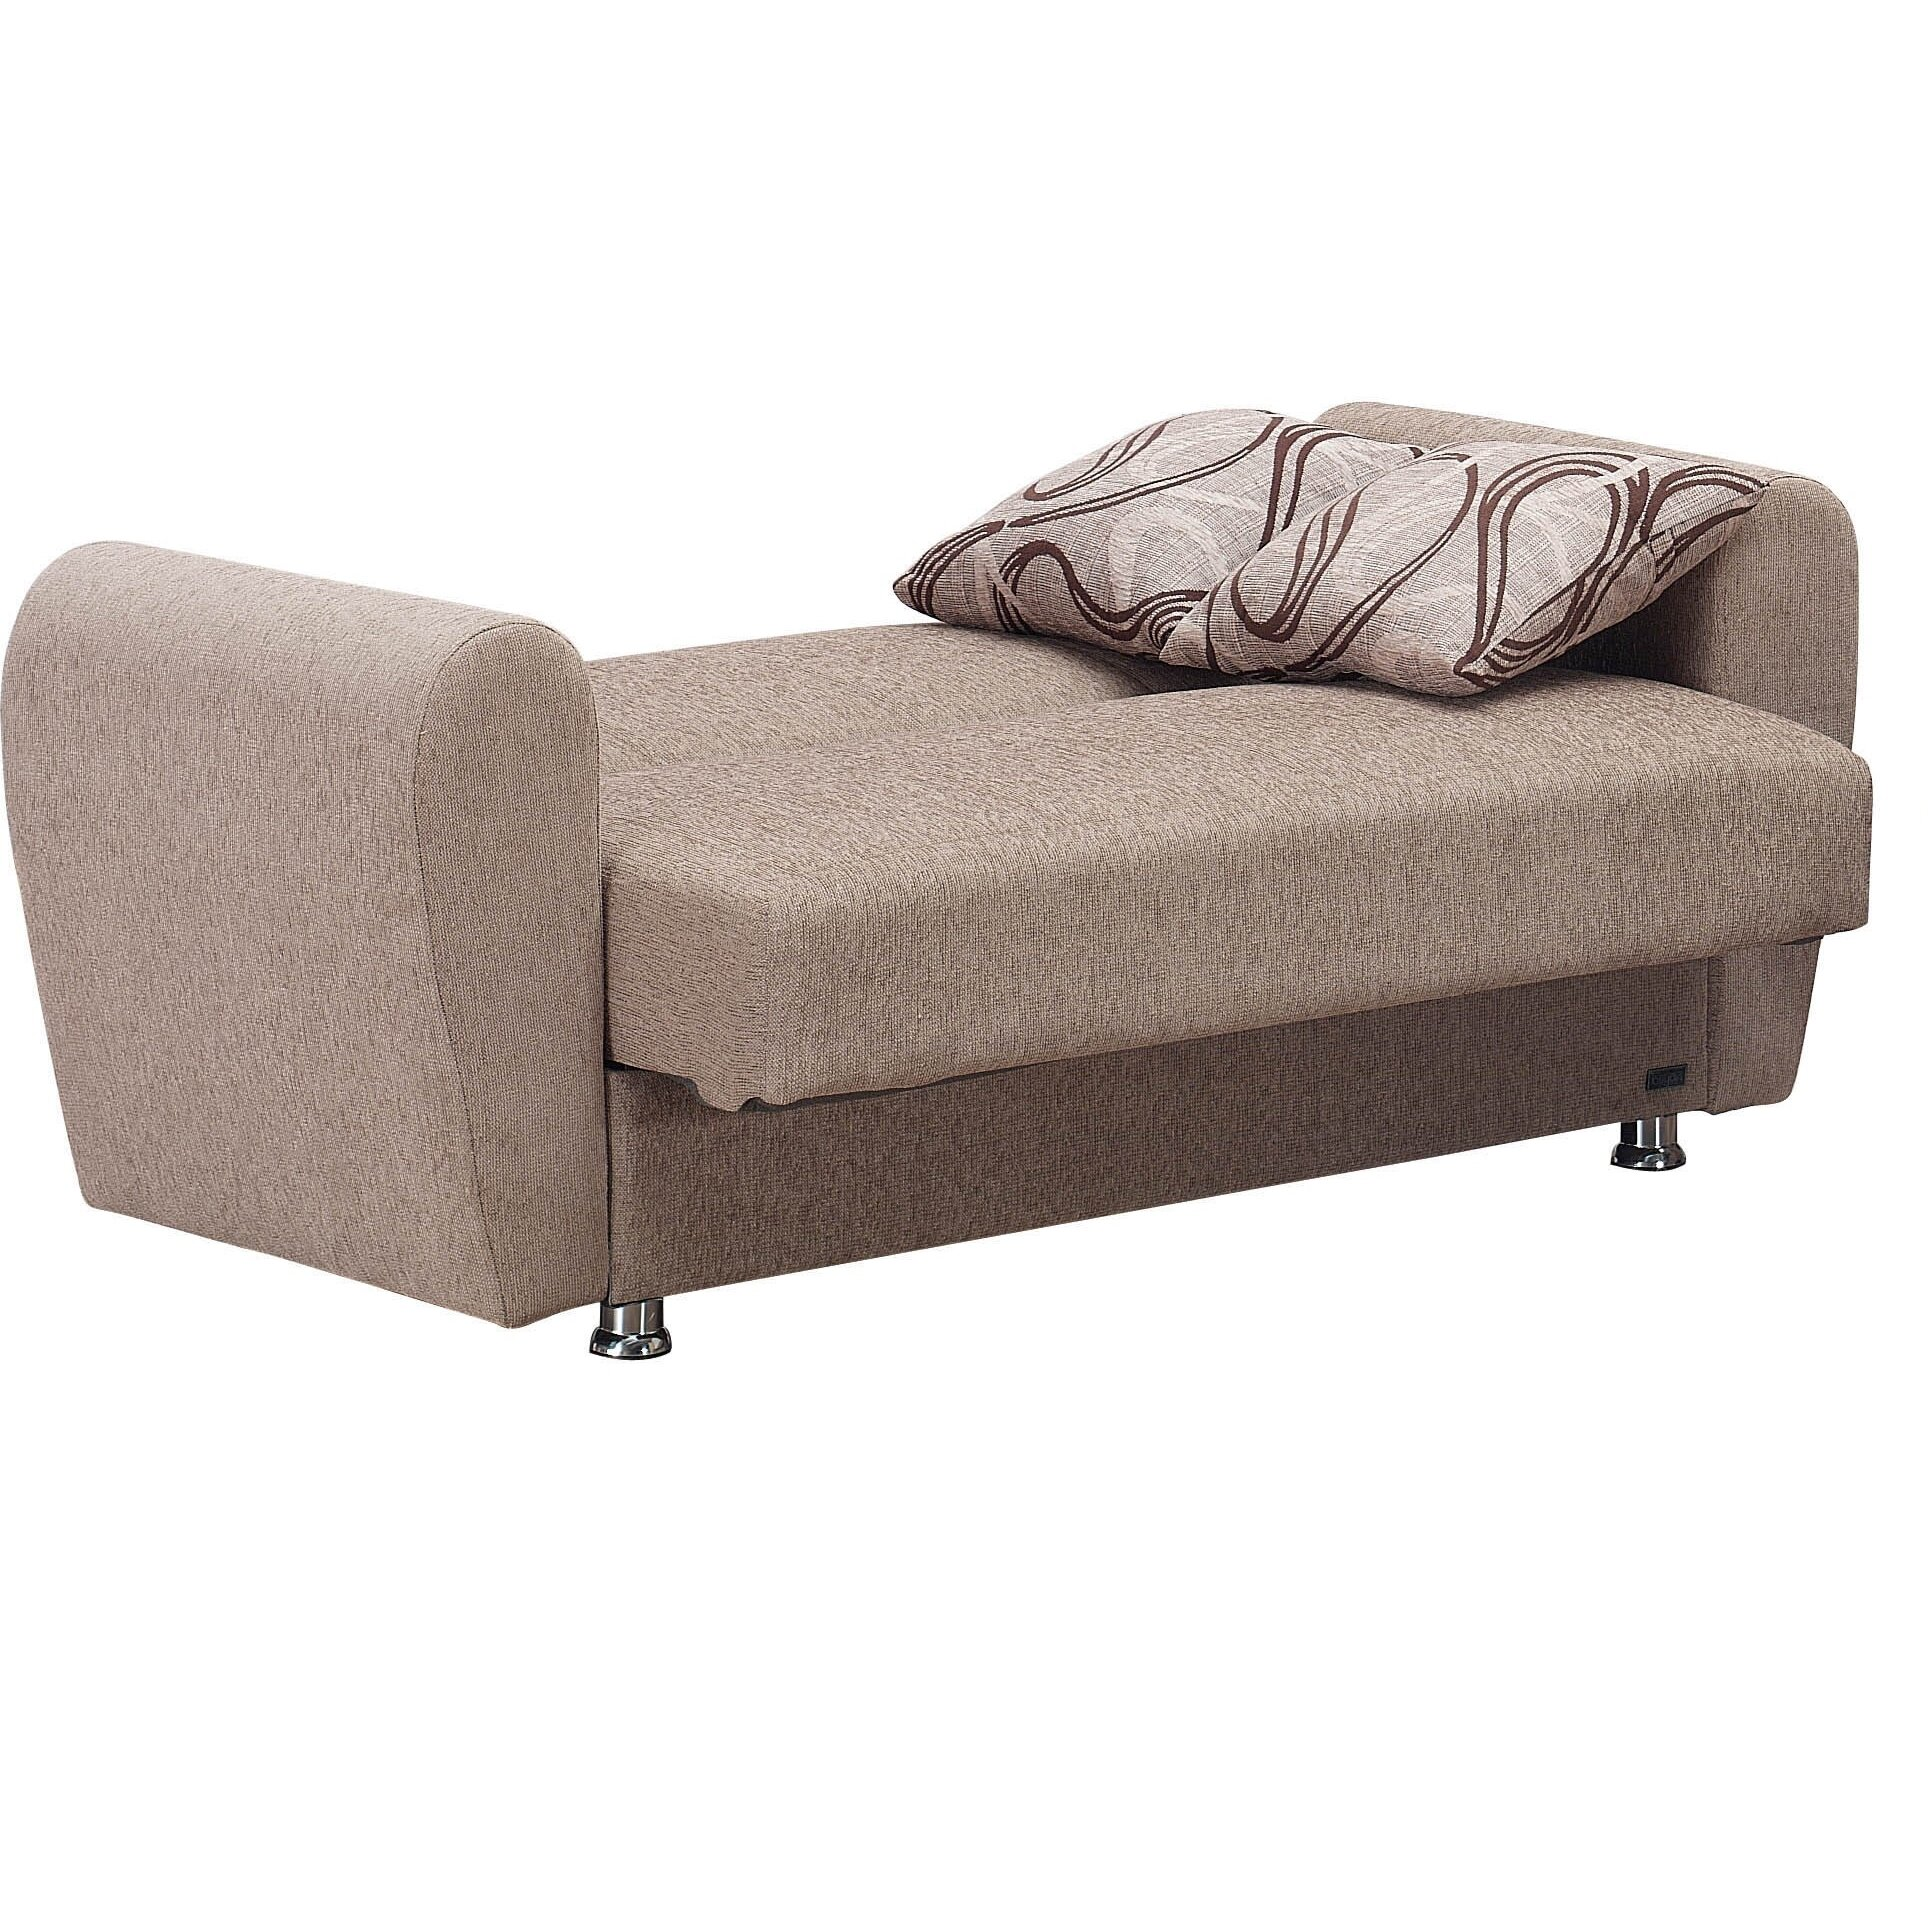 Beyan Colorado Sleeper Sofa Reviews Wayfair